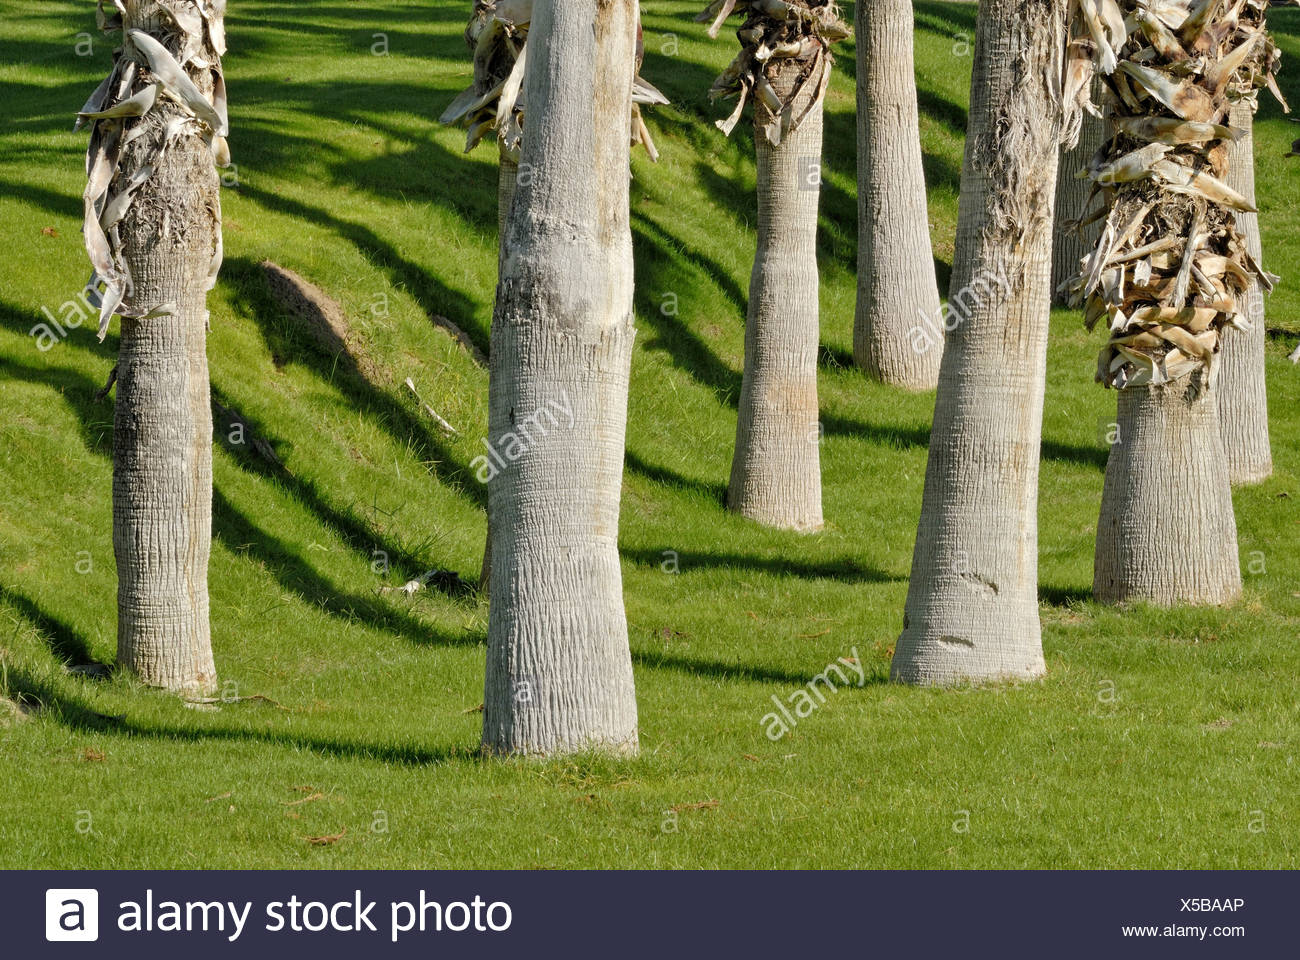 Palm trunks, throwing shadows onto watered lawn, Indian Palm Country Club, Indio, Southern California, California, USA - Stock Image